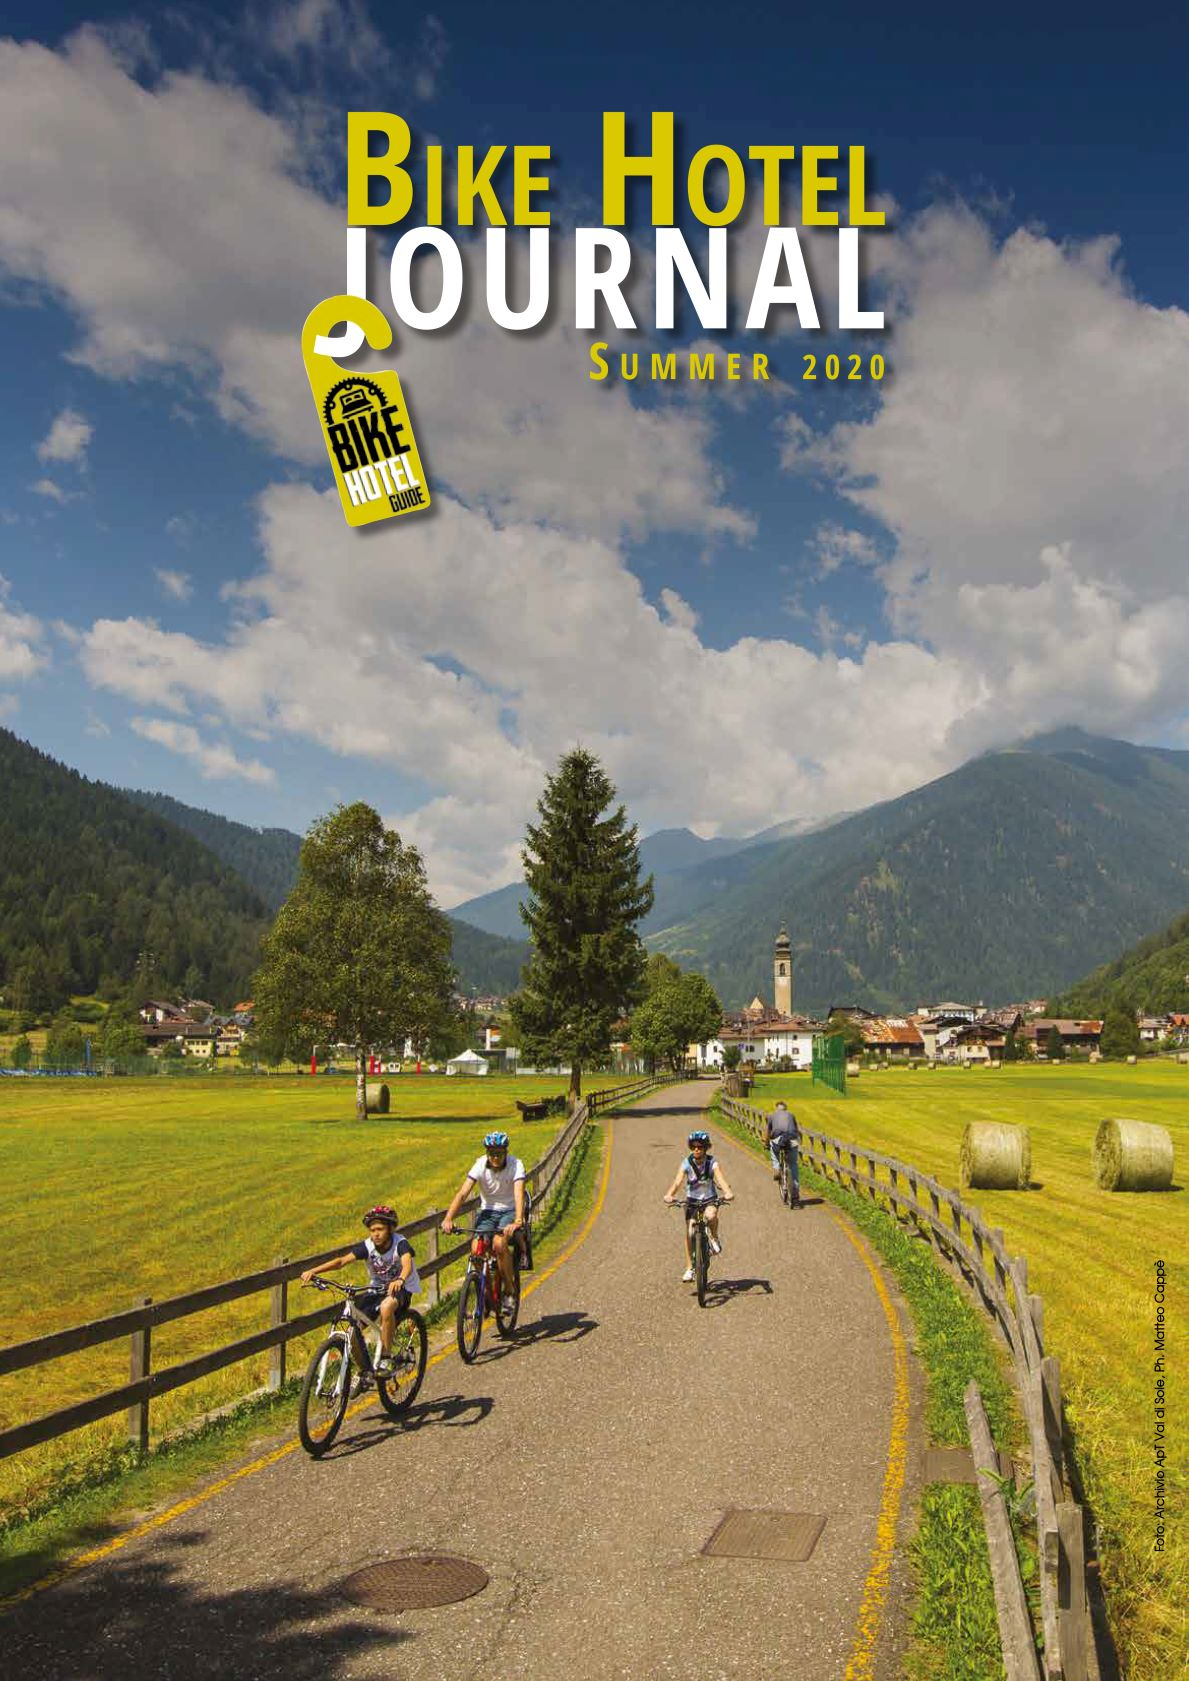 Bike Hotel Journal Summer 2020